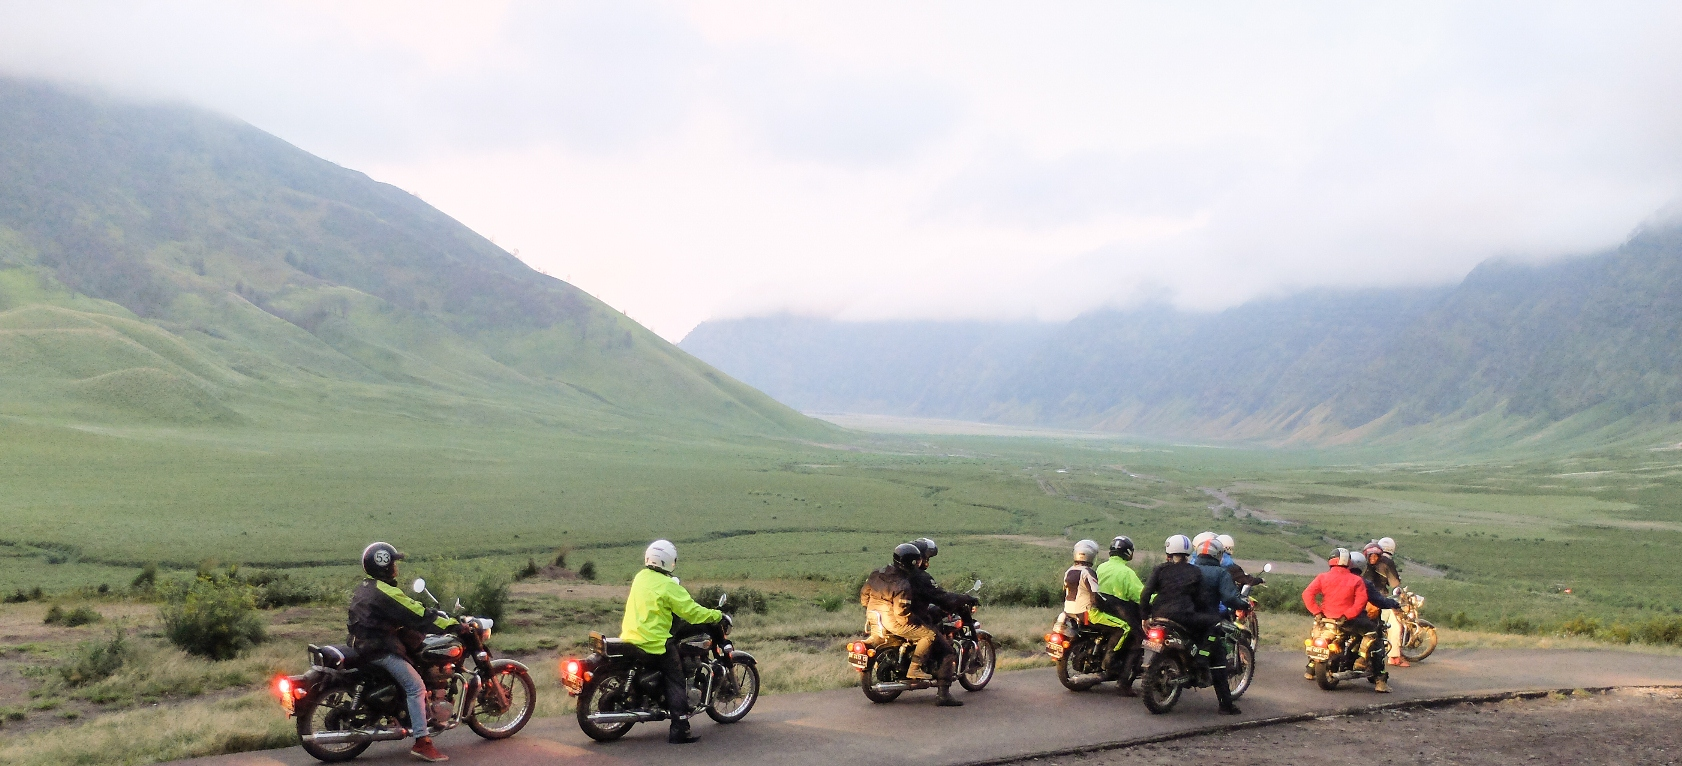 Java Motorbike Tour Indonesia